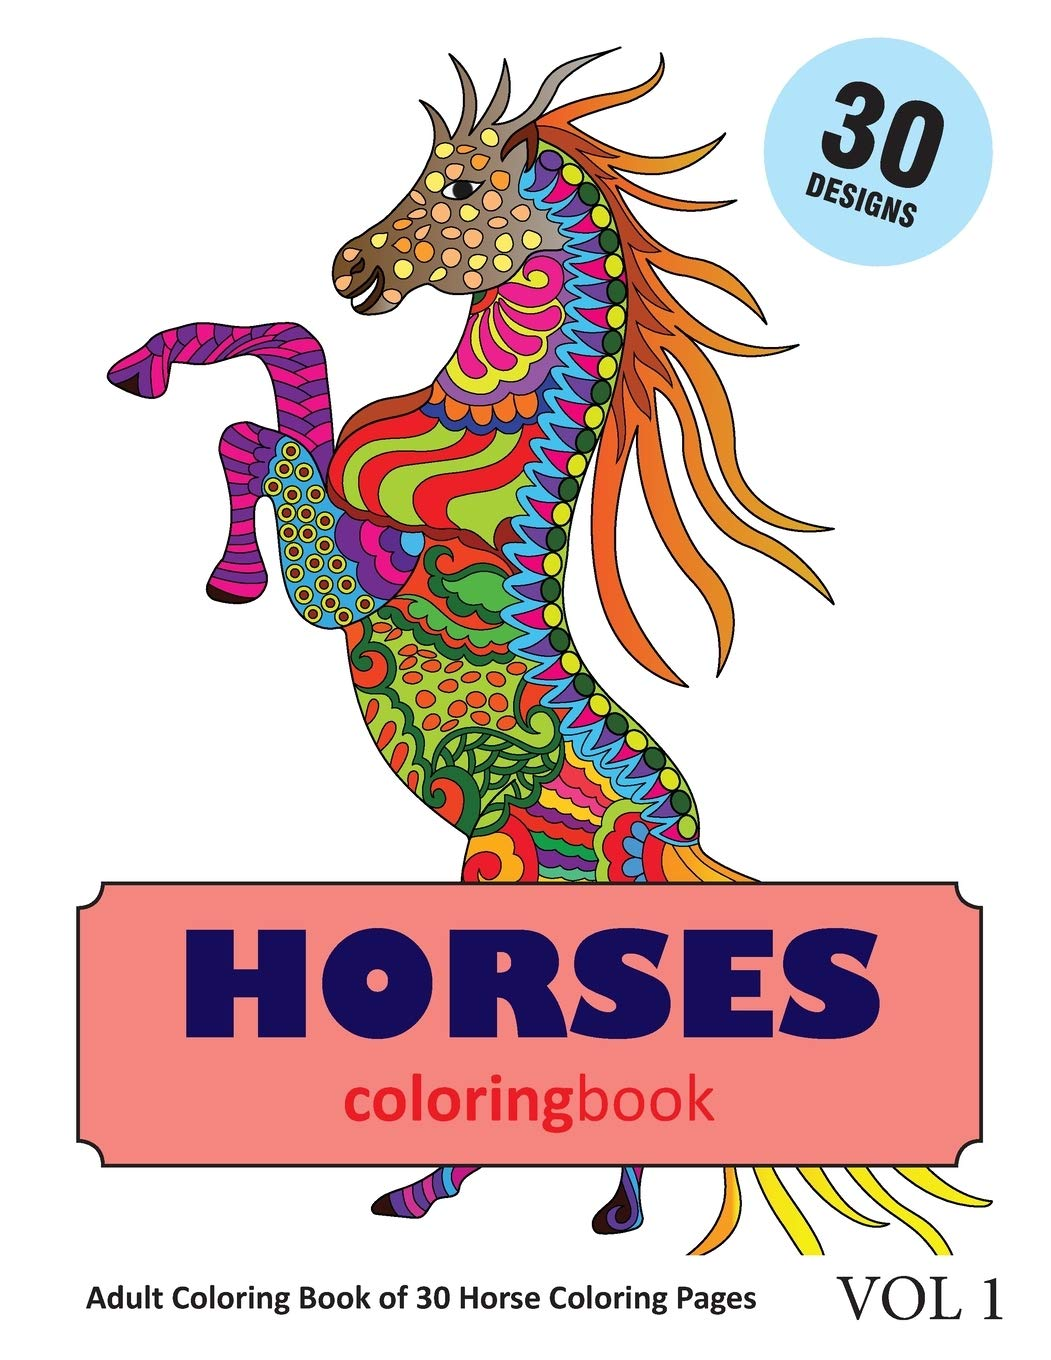 Amazon Com Horse Coloring Book 30 Coloring Pages Of Horses Designs In Coloring Book For Adults Vol 1 9781718063204 Rai Sonia Books